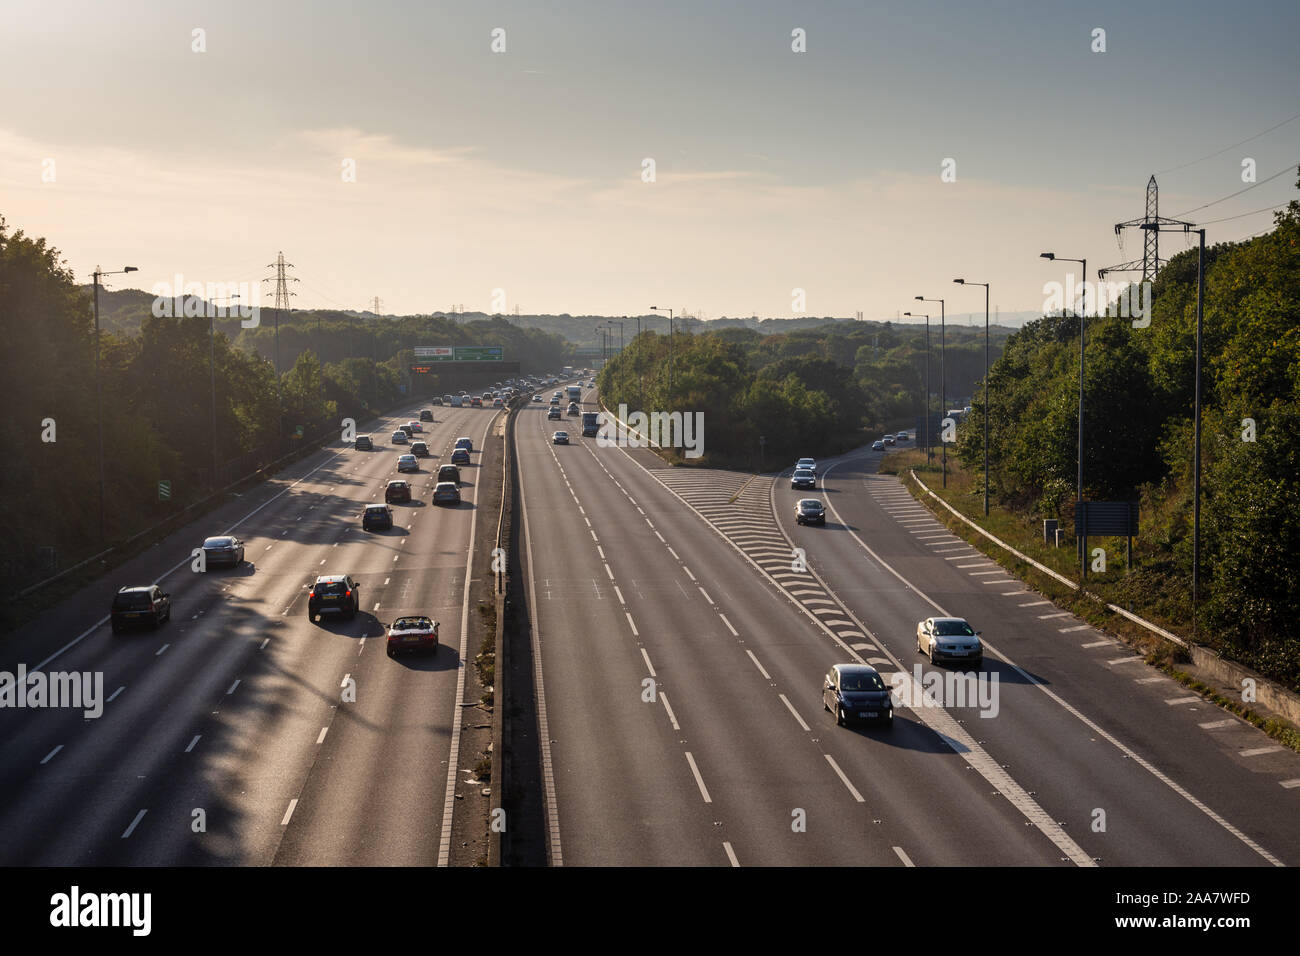 Dartford, England, UK - September 21, 2019: Traffic flows on the A2 motorway at Ebbsfleet between Dartford and Gravesend in north Kent. Stock Photo